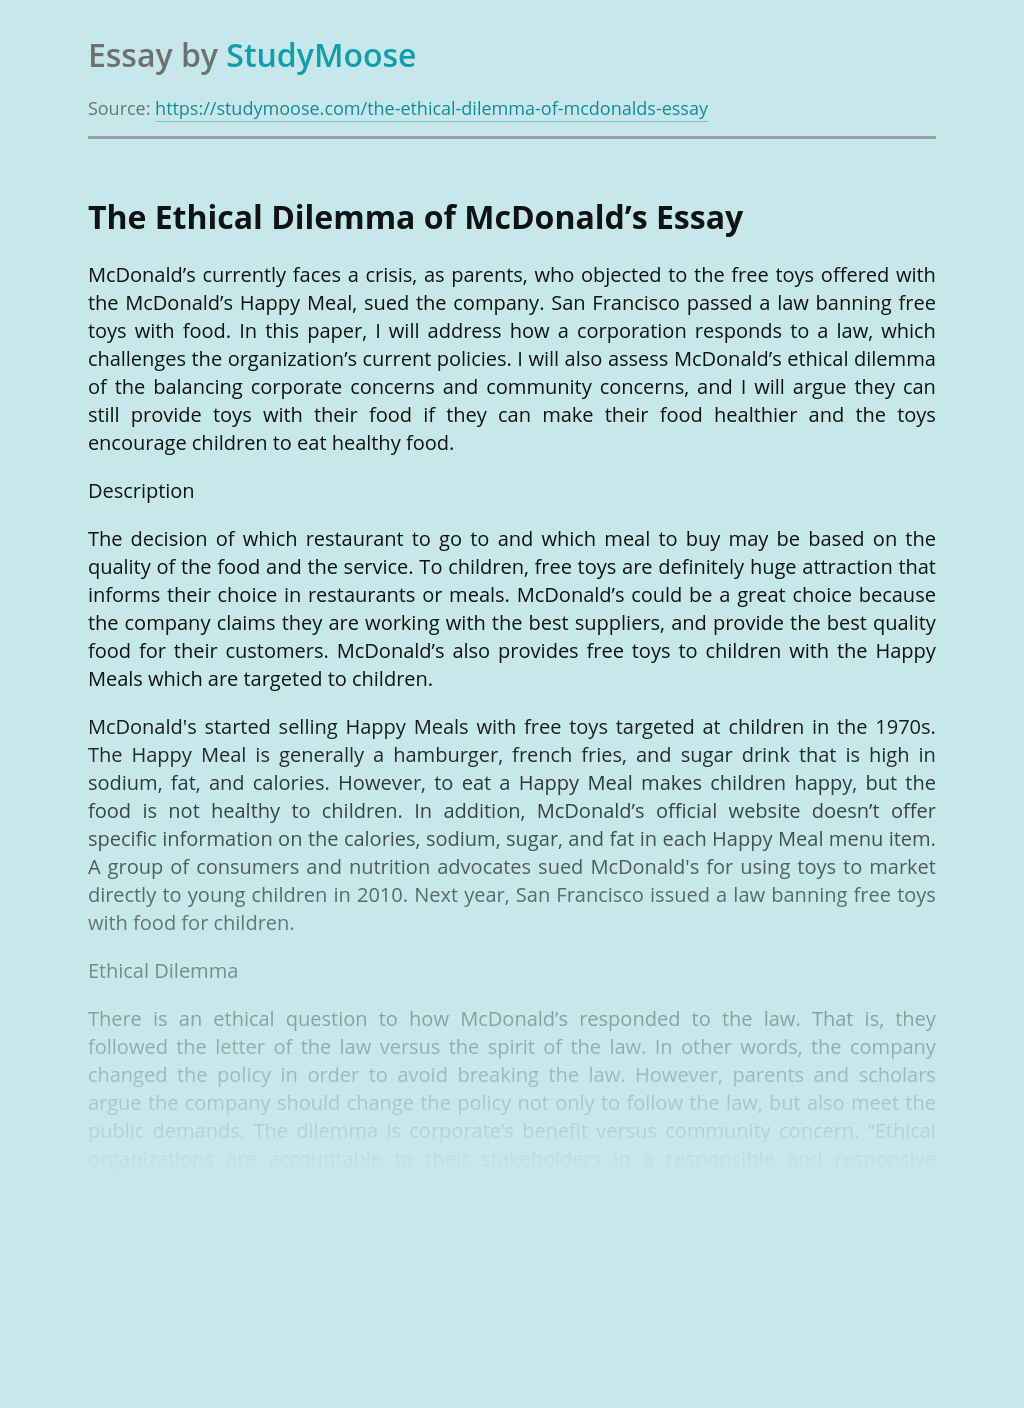 The Ethical Dilemma of McDonald's